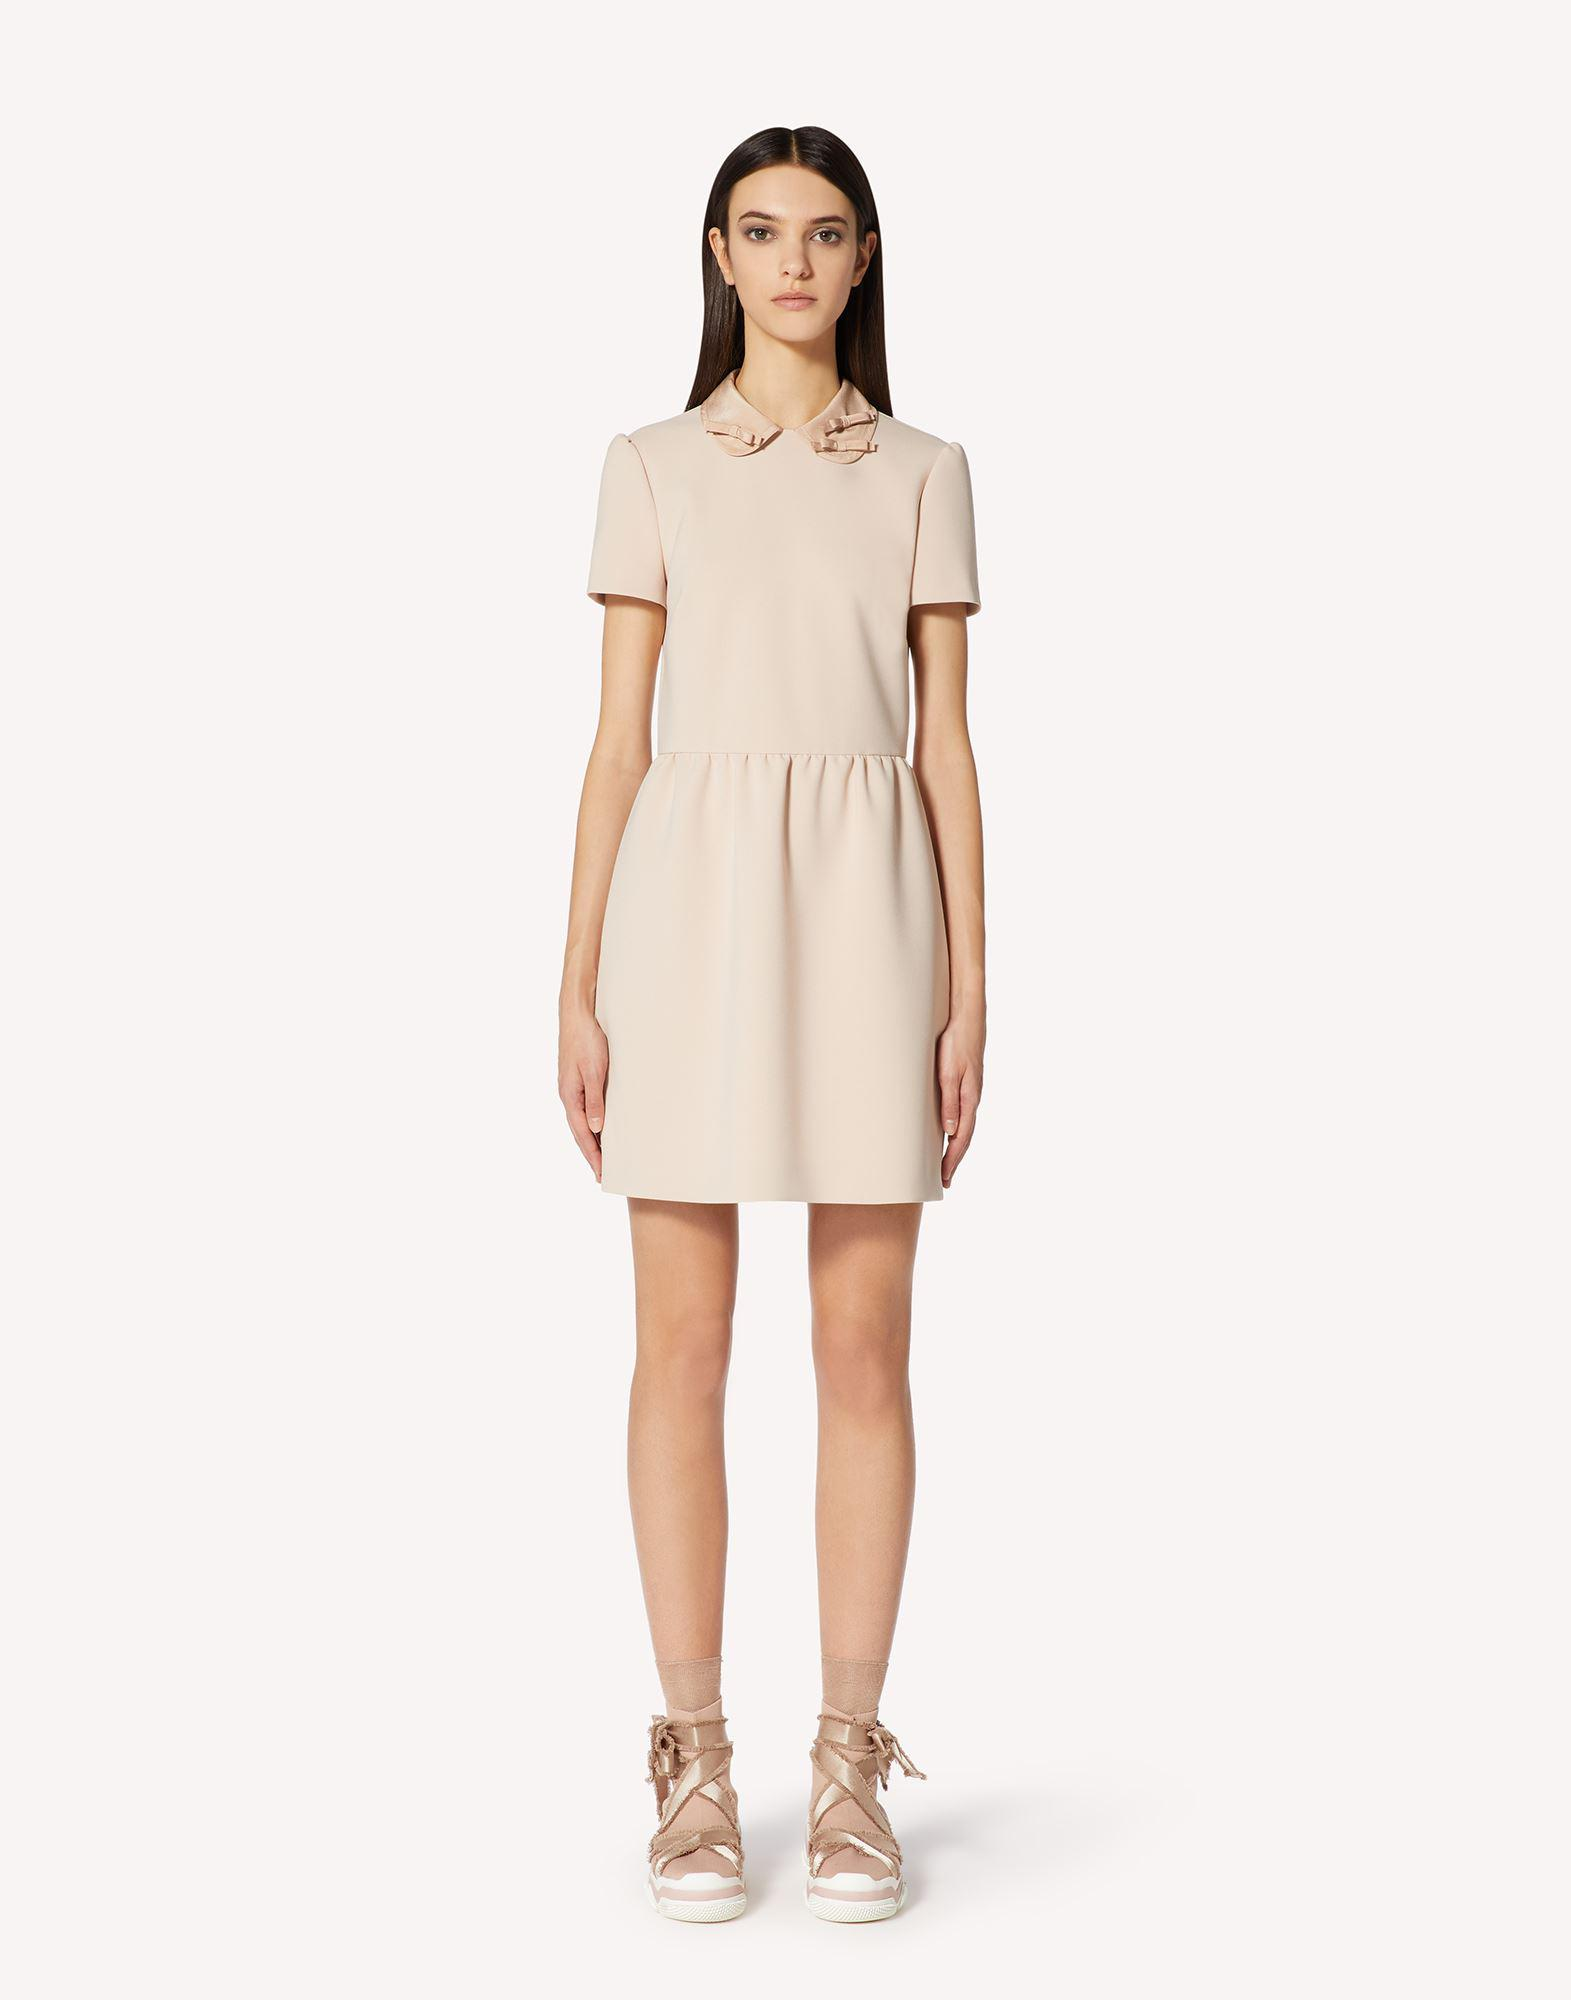 CADY TECH DRESS WITH BOW DETAILS